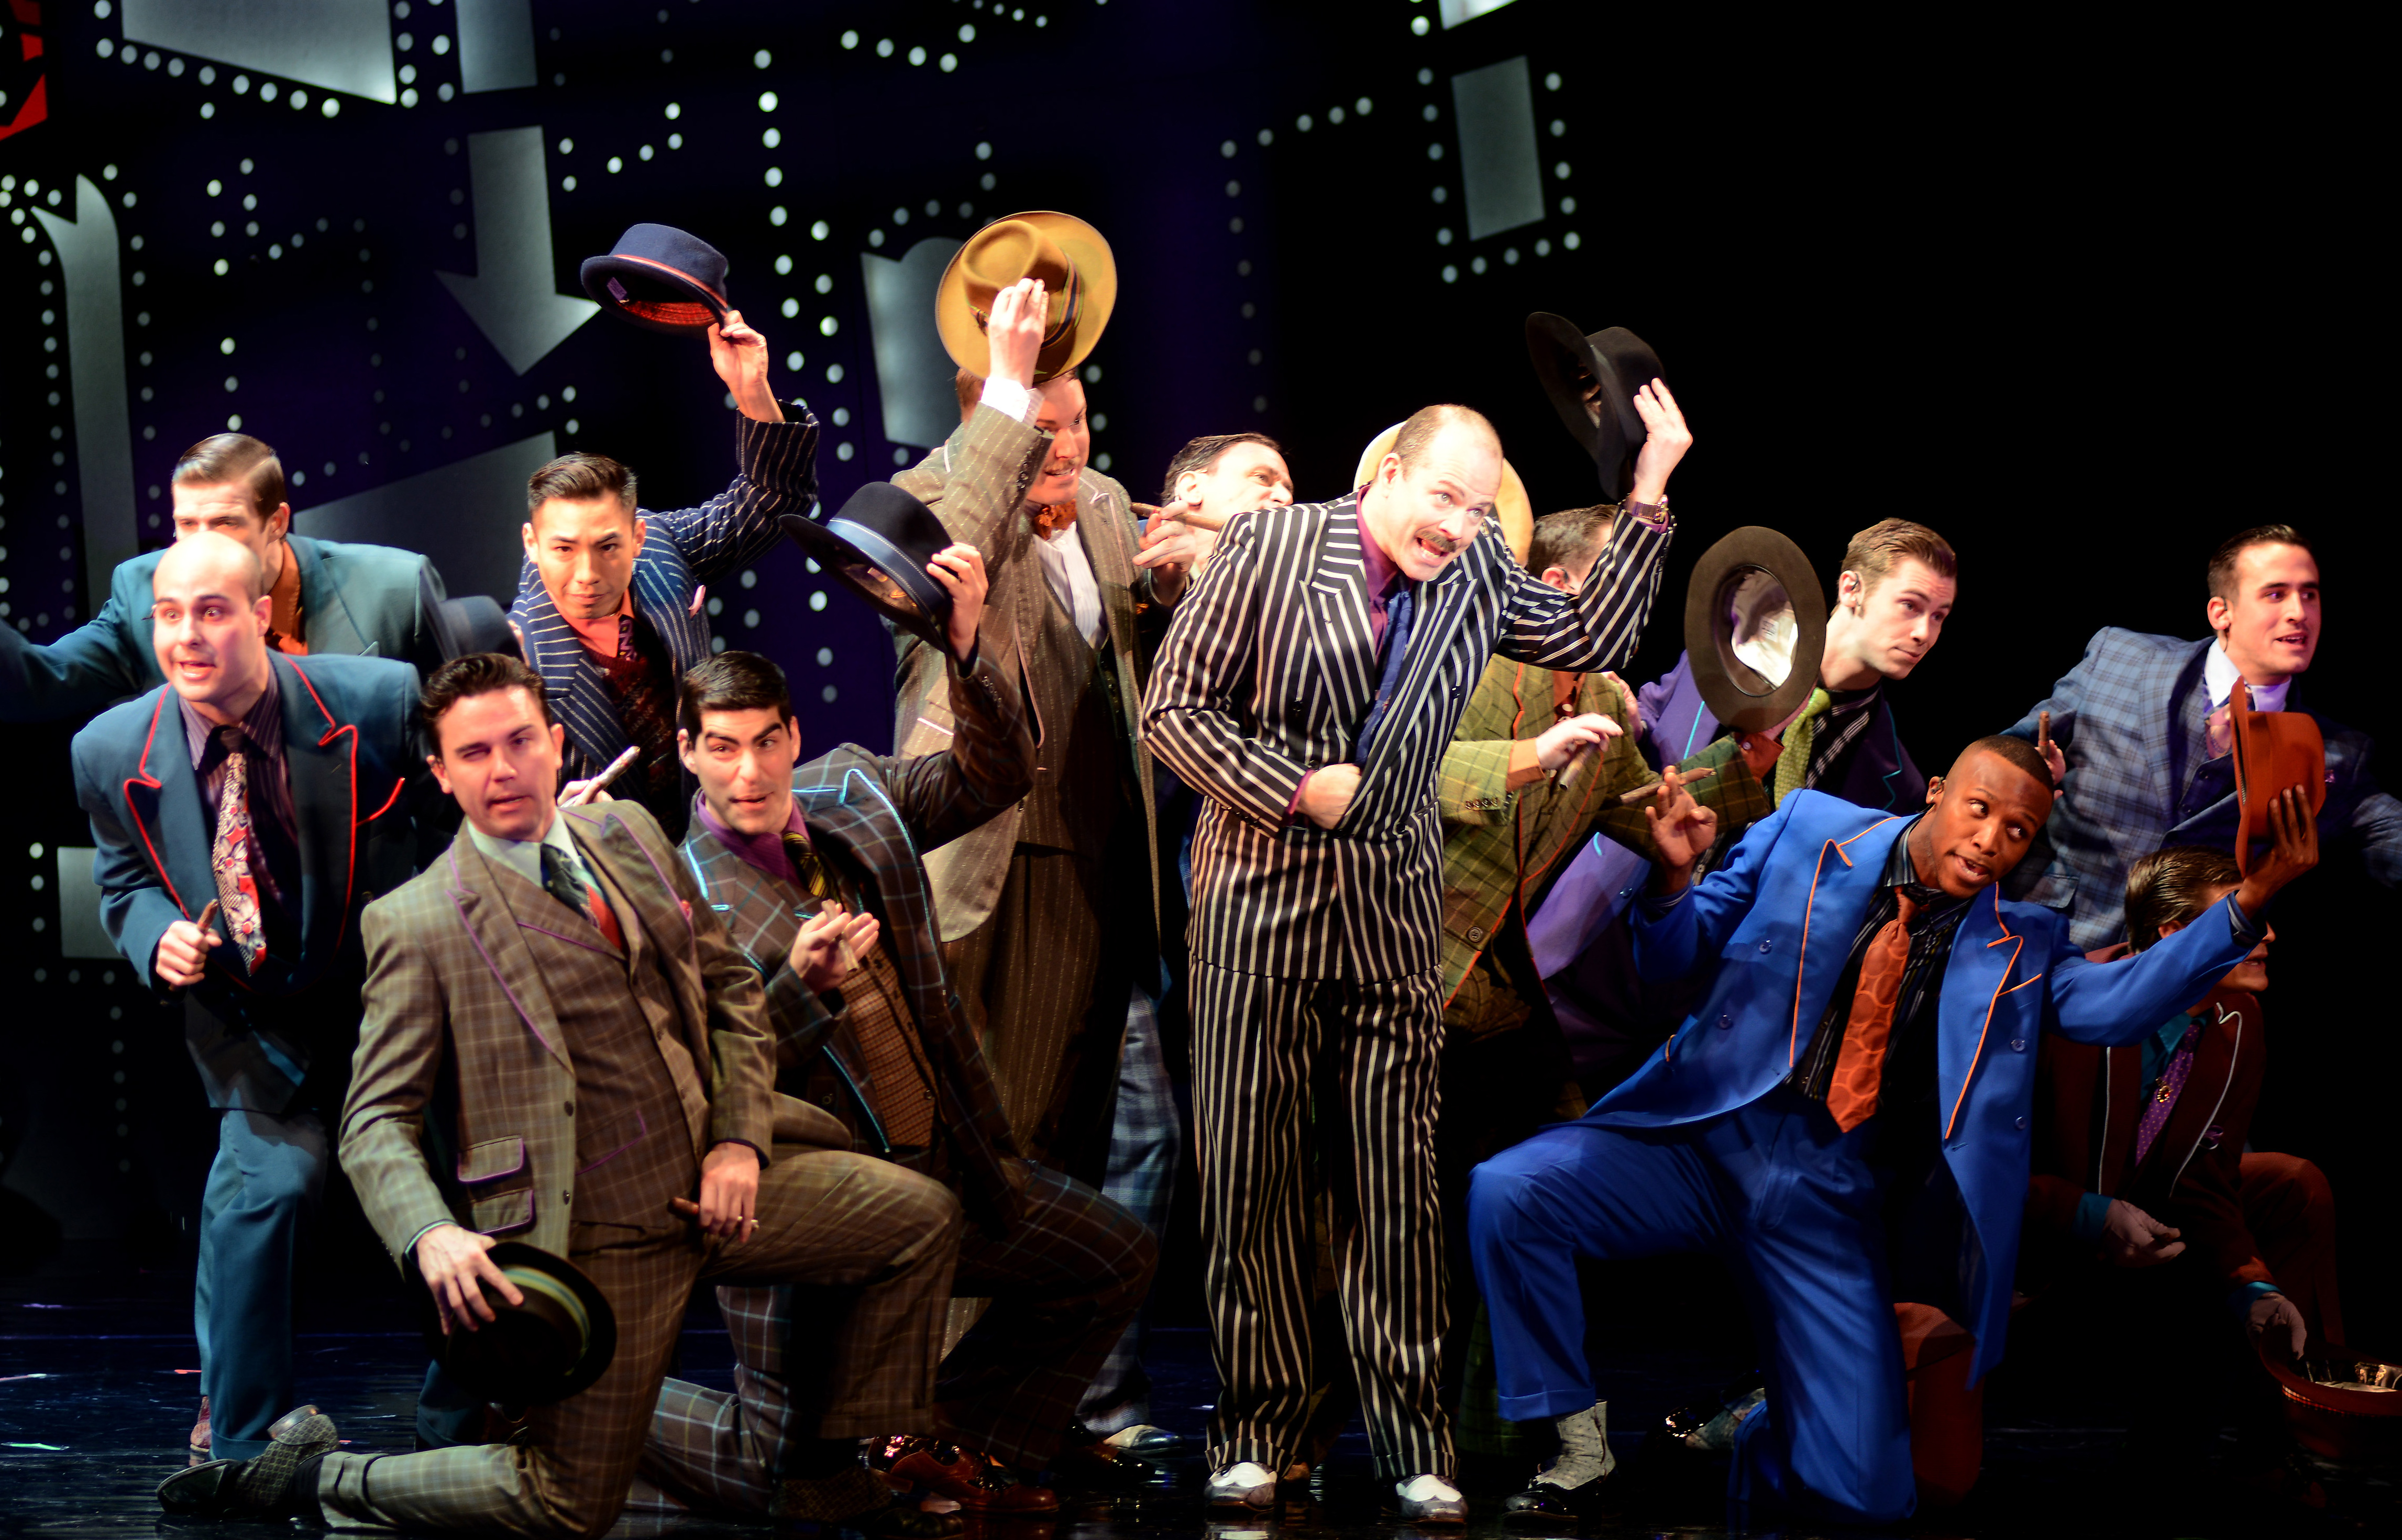 an analysis of guys and dolls performed in the murray kahn theater He has performed most recently as jud in oklahoma at theater in the grove where he also performed in chicago, the full monty, and god of colton is thrilled to be making his broadway rose debut in guys and dolls previous credits include edna in hairspray, selsdon in noises off.